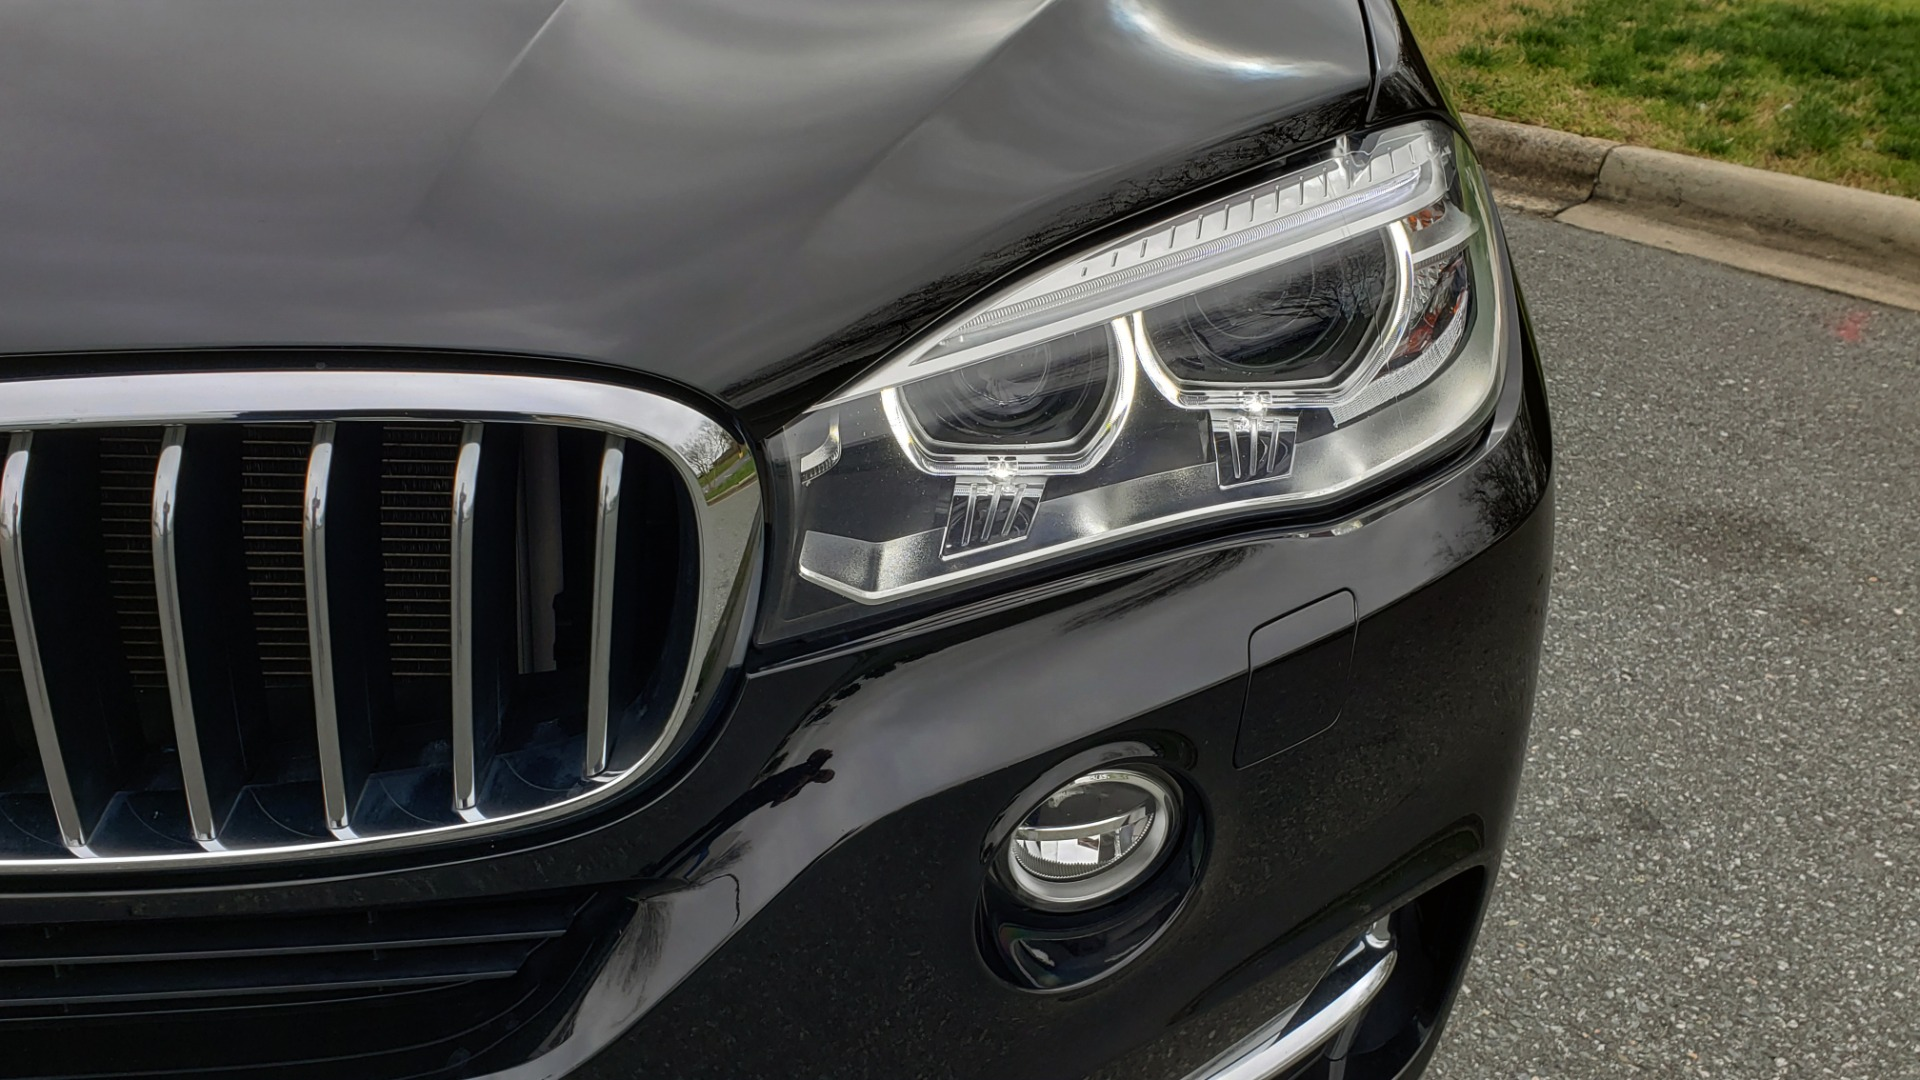 Used 2017 BMW X5 XDRIVE35I / PREM LUX PKG / DRVR ASST / CLD WTHR / APPLE CAR PLAY for sale Sold at Formula Imports in Charlotte NC 28227 24